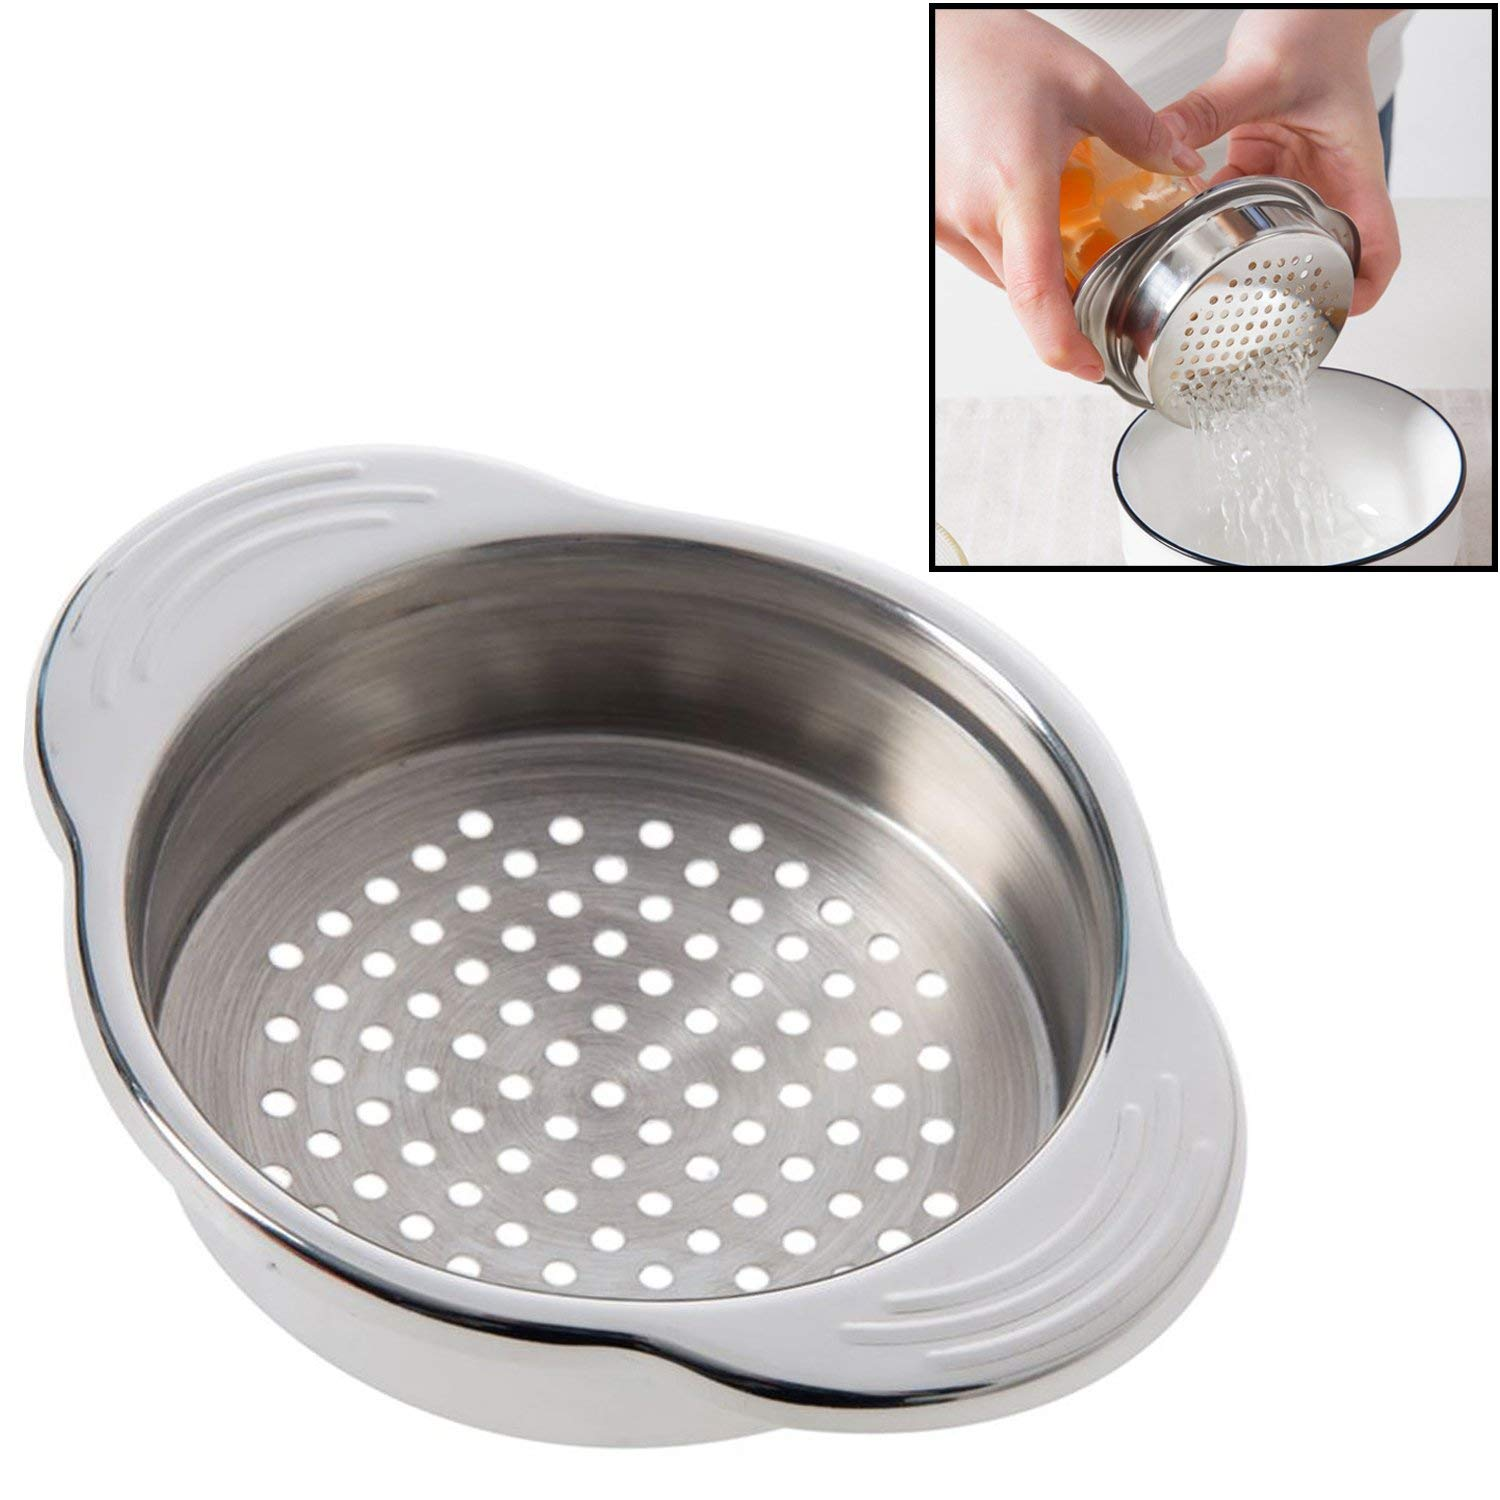 Stainless Steel Food Can Strainer Sieve Tuna Press Lid Oil Drainer Remover, Unique No-Mess Dishwasher Safe Design image